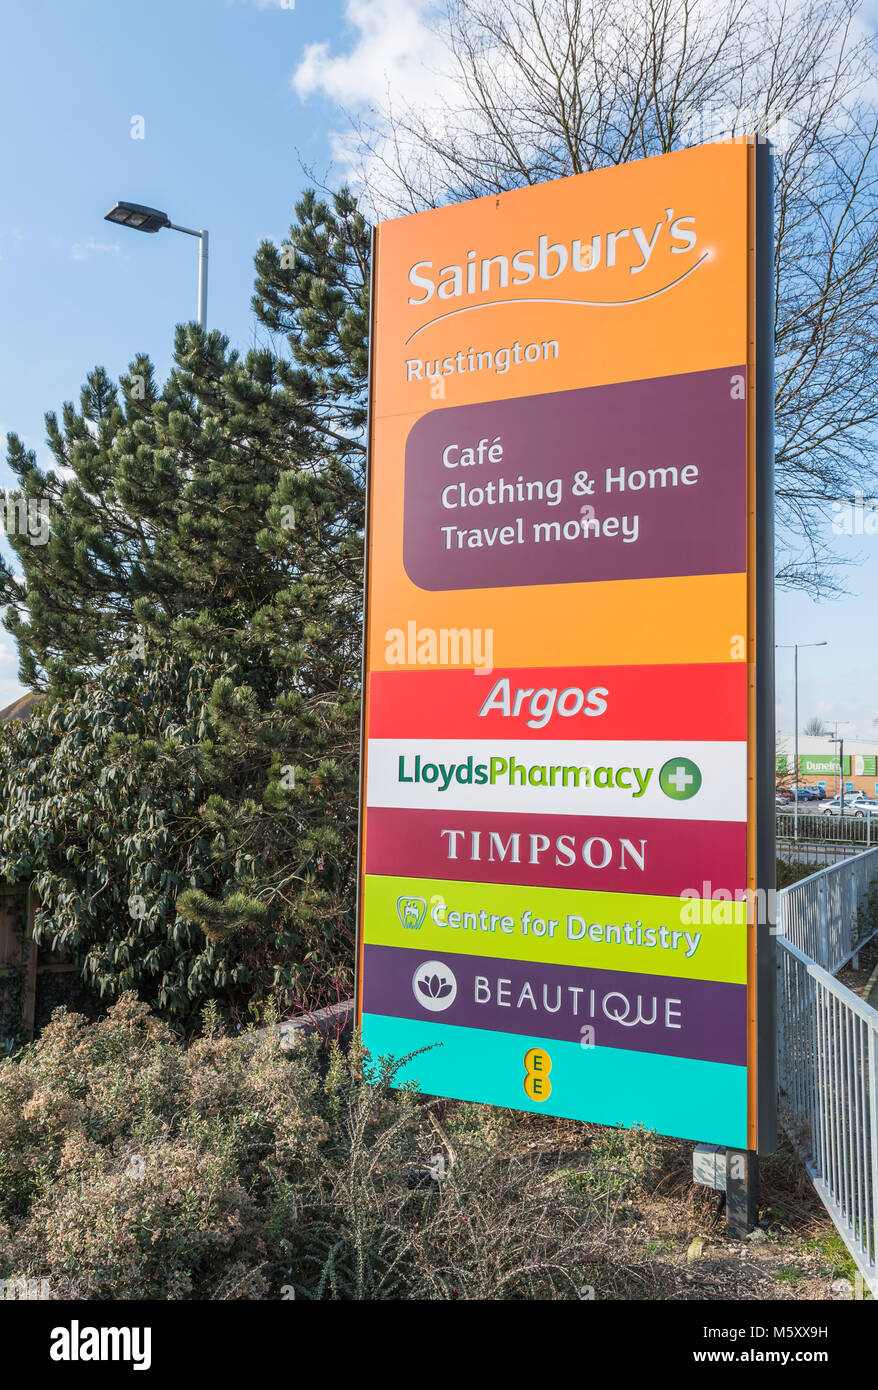 Large sign at the entrance to a British Retail park in Rustington, West Sussex, England, UK. - Stock Image